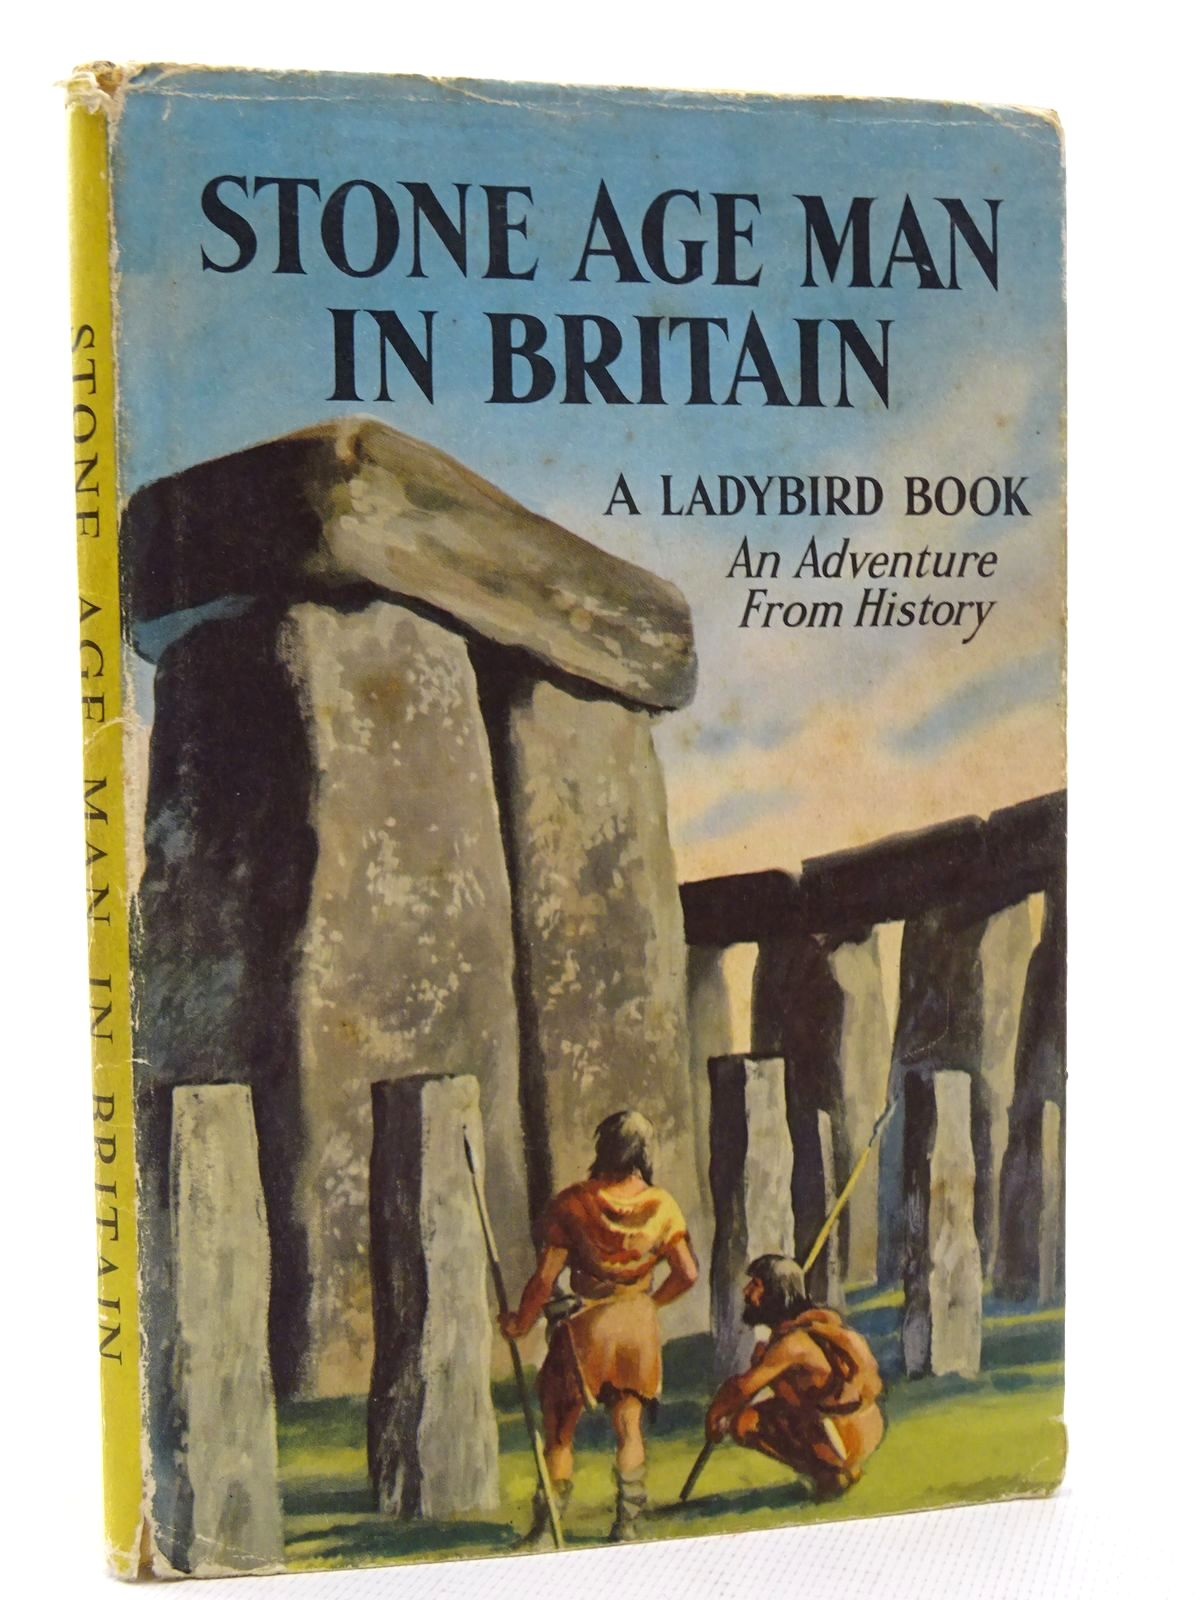 Photo of STONE AGE MAN IN BRITAIN written by Peach, L. Du Garde illustrated by Kenney, John published by Wills & Hepworth Ltd. (STOCK CODE: 2124651)  for sale by Stella & Rose's Books